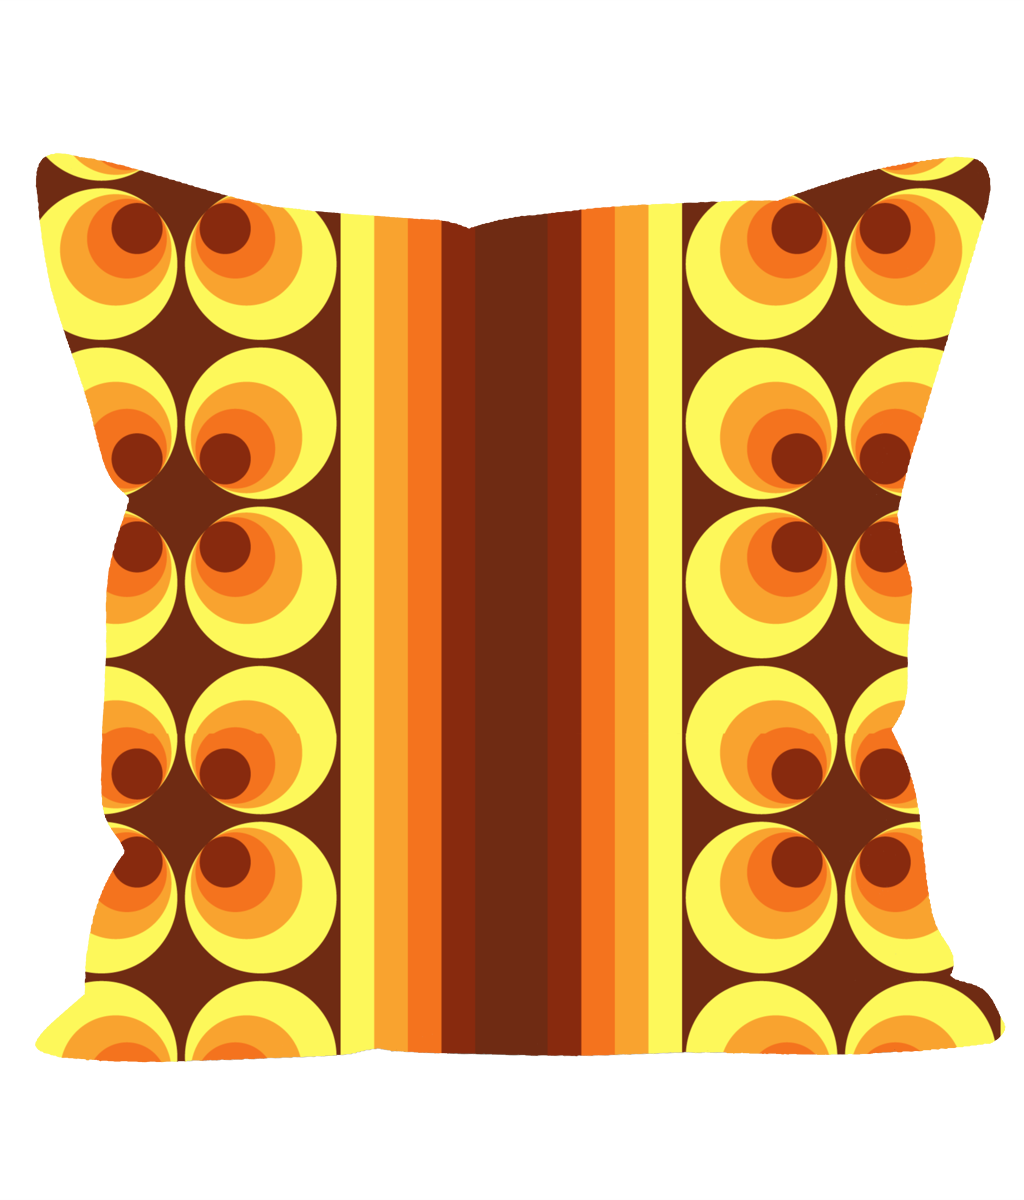 Retro Vintage Orange Geometric Cushion with Stripes and Circles.